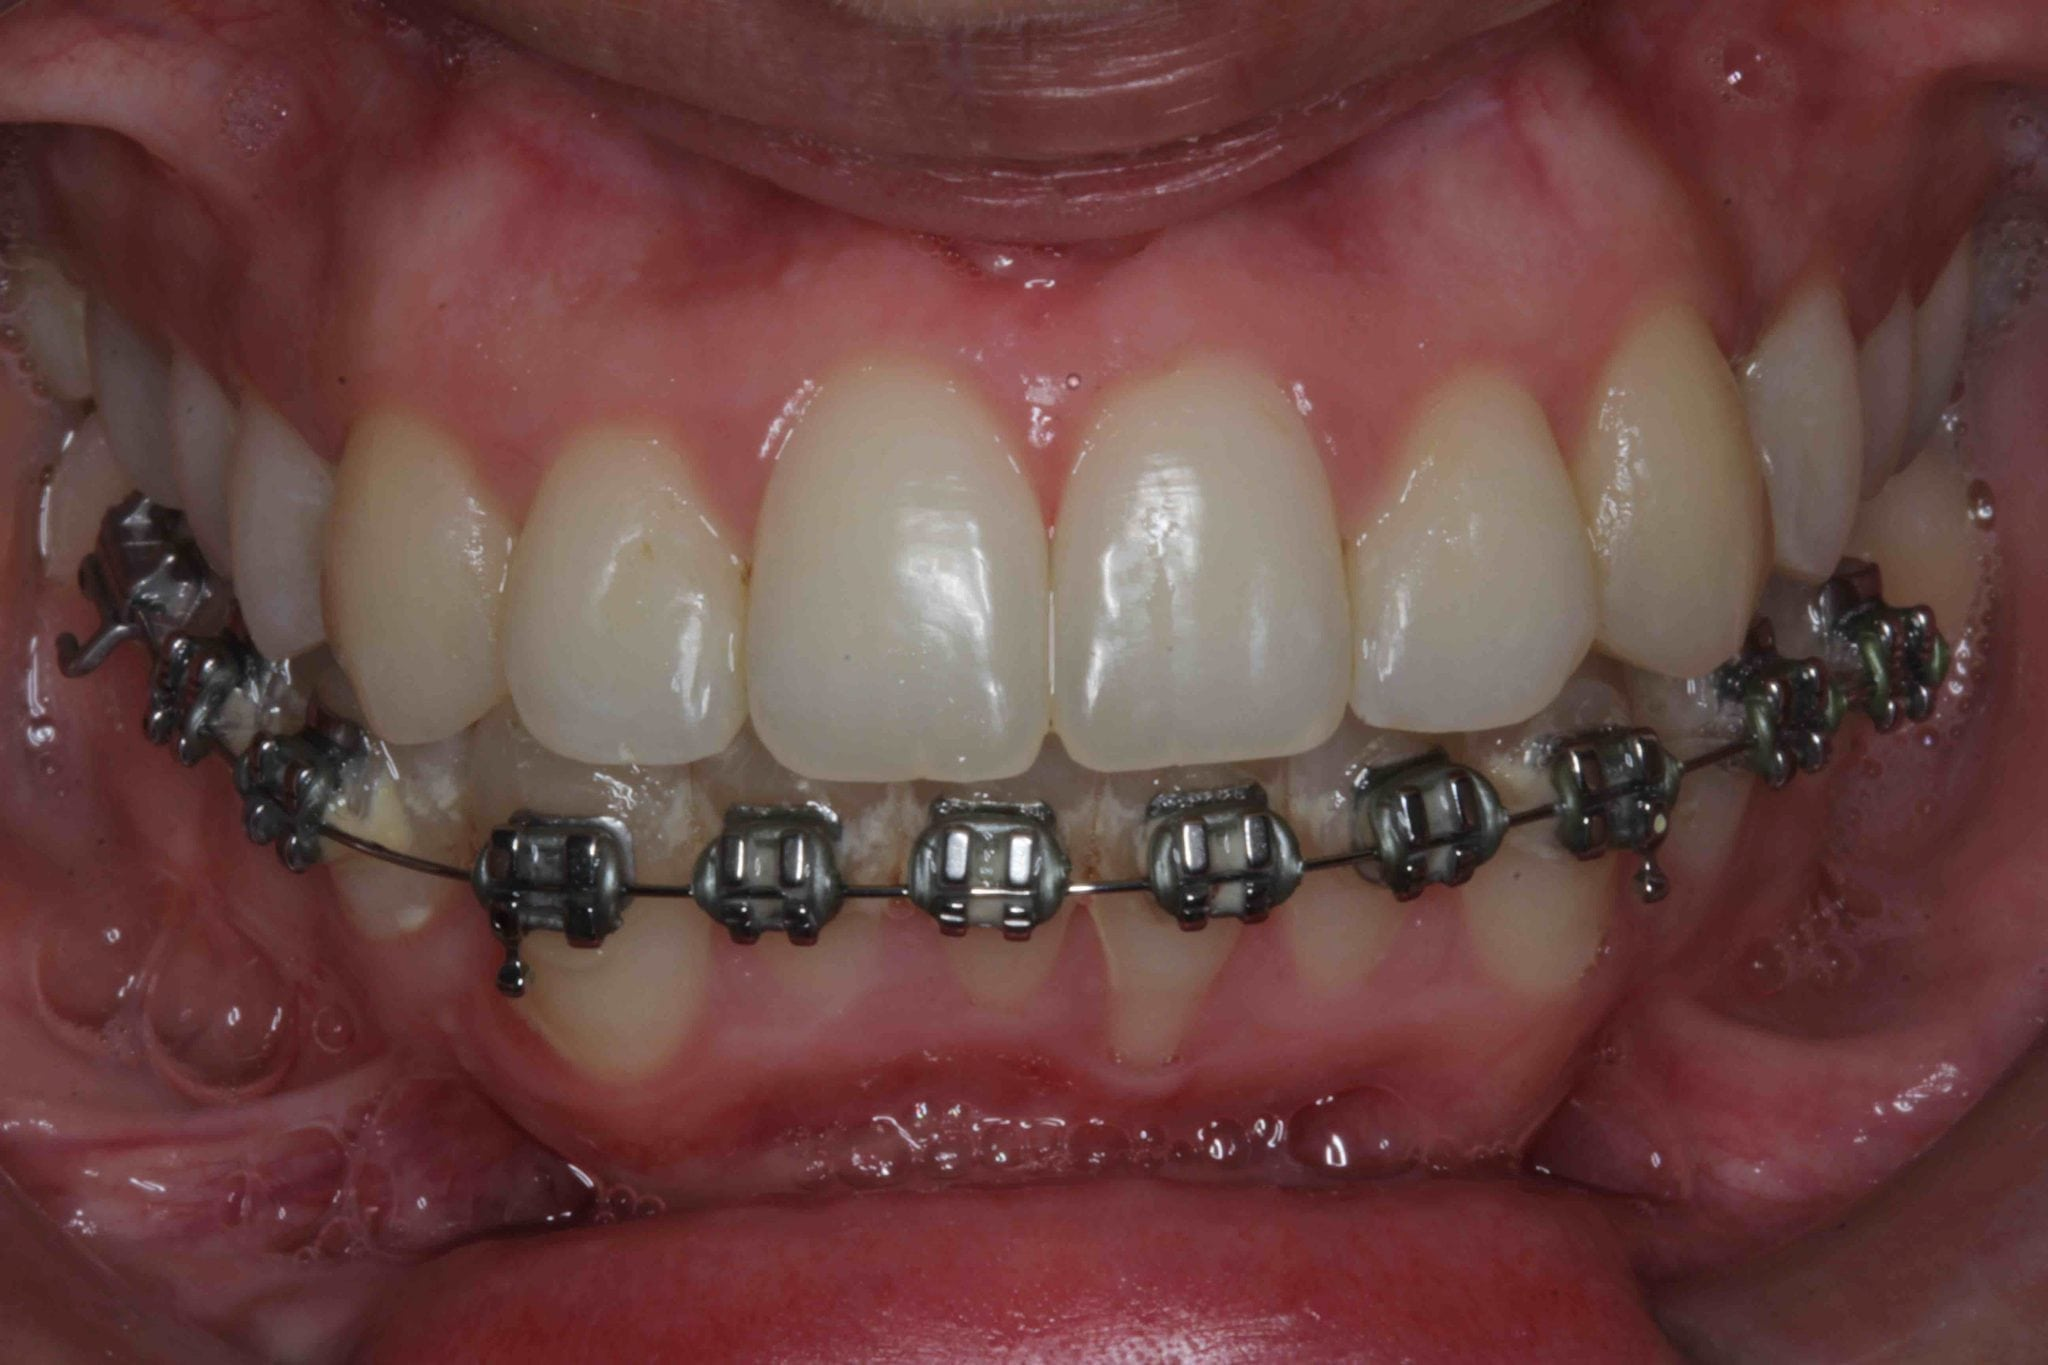 Porcelain Veneers Or Braces Make The Right Choice